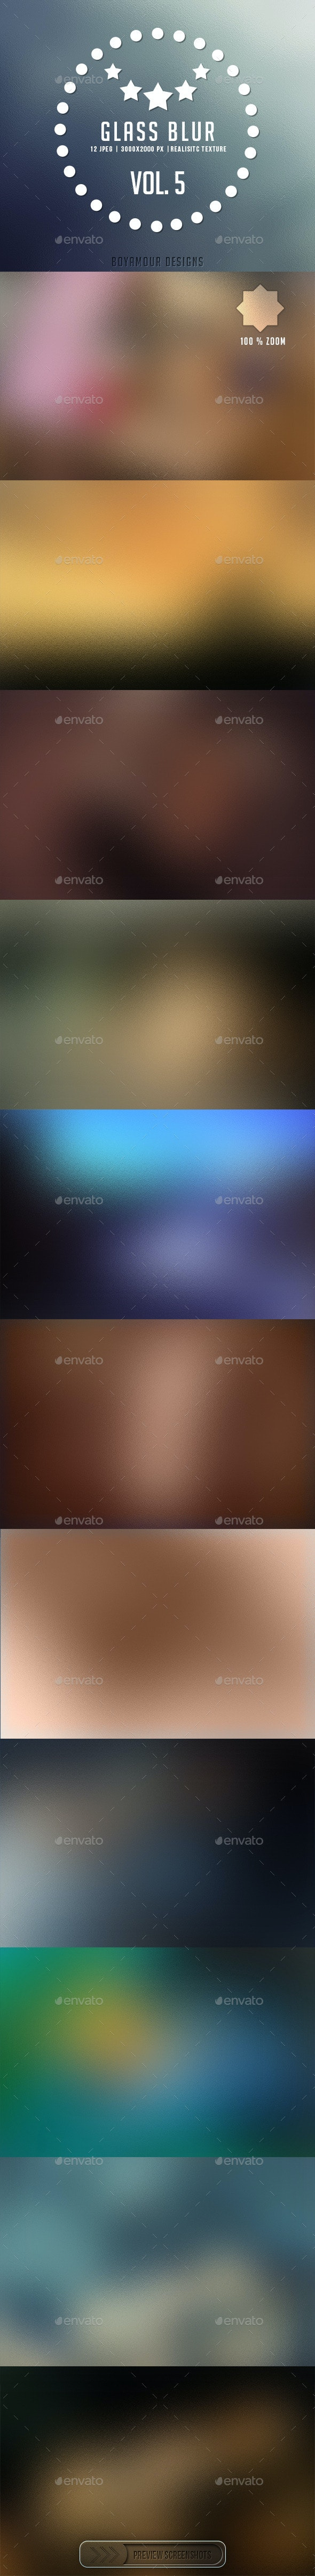 Glass Blur Vol 5 NG - Backgrounds Graphics